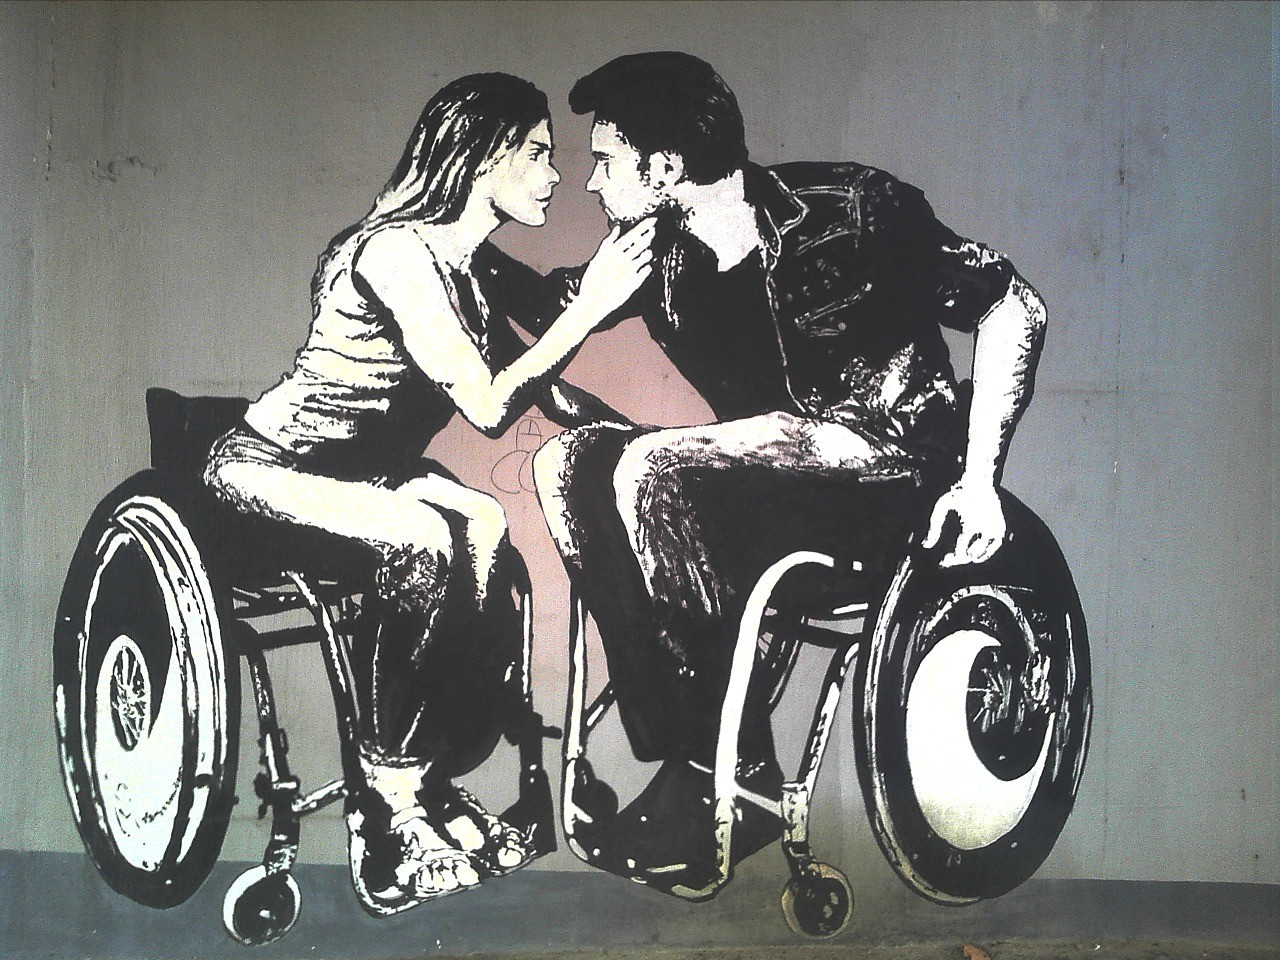 disabilities/pixabay.com